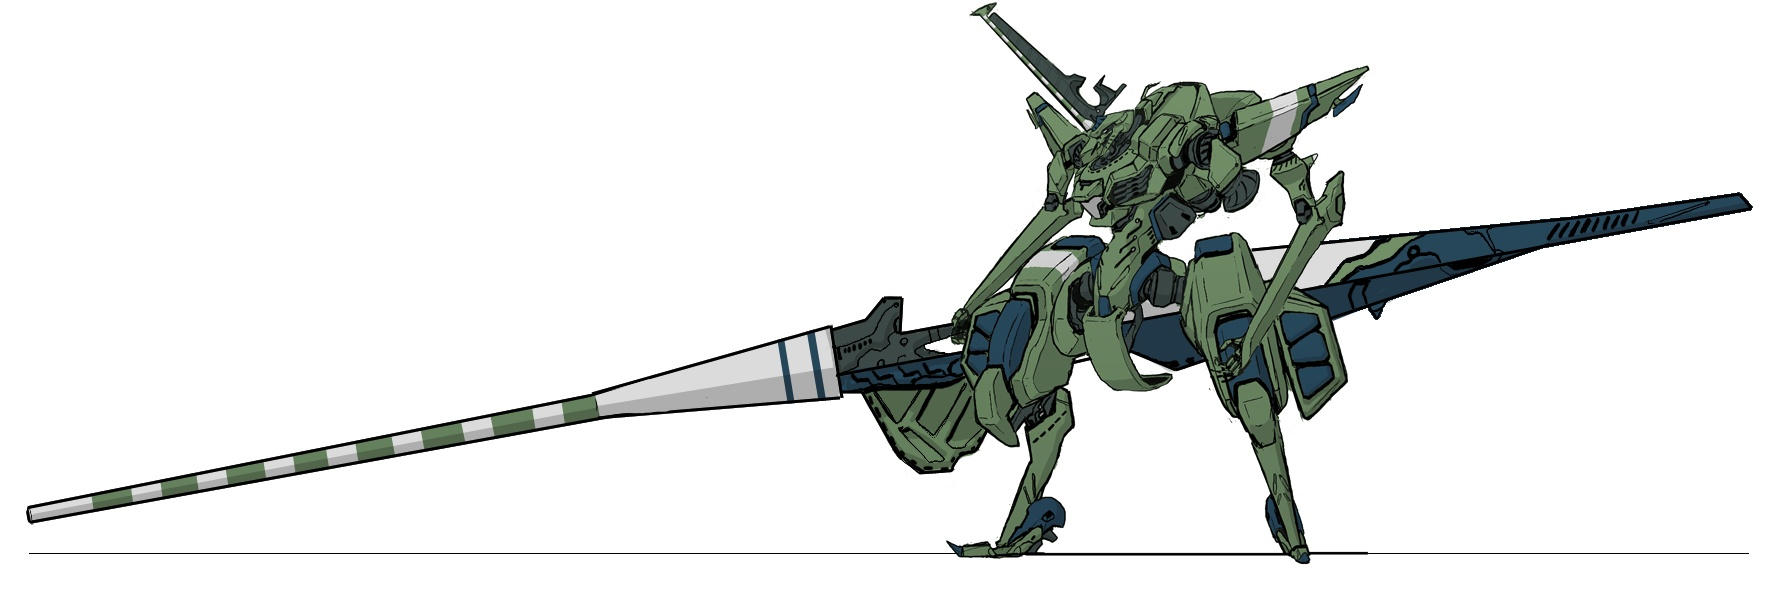 Galahad w. massdriver cannon by genocidalpenguin